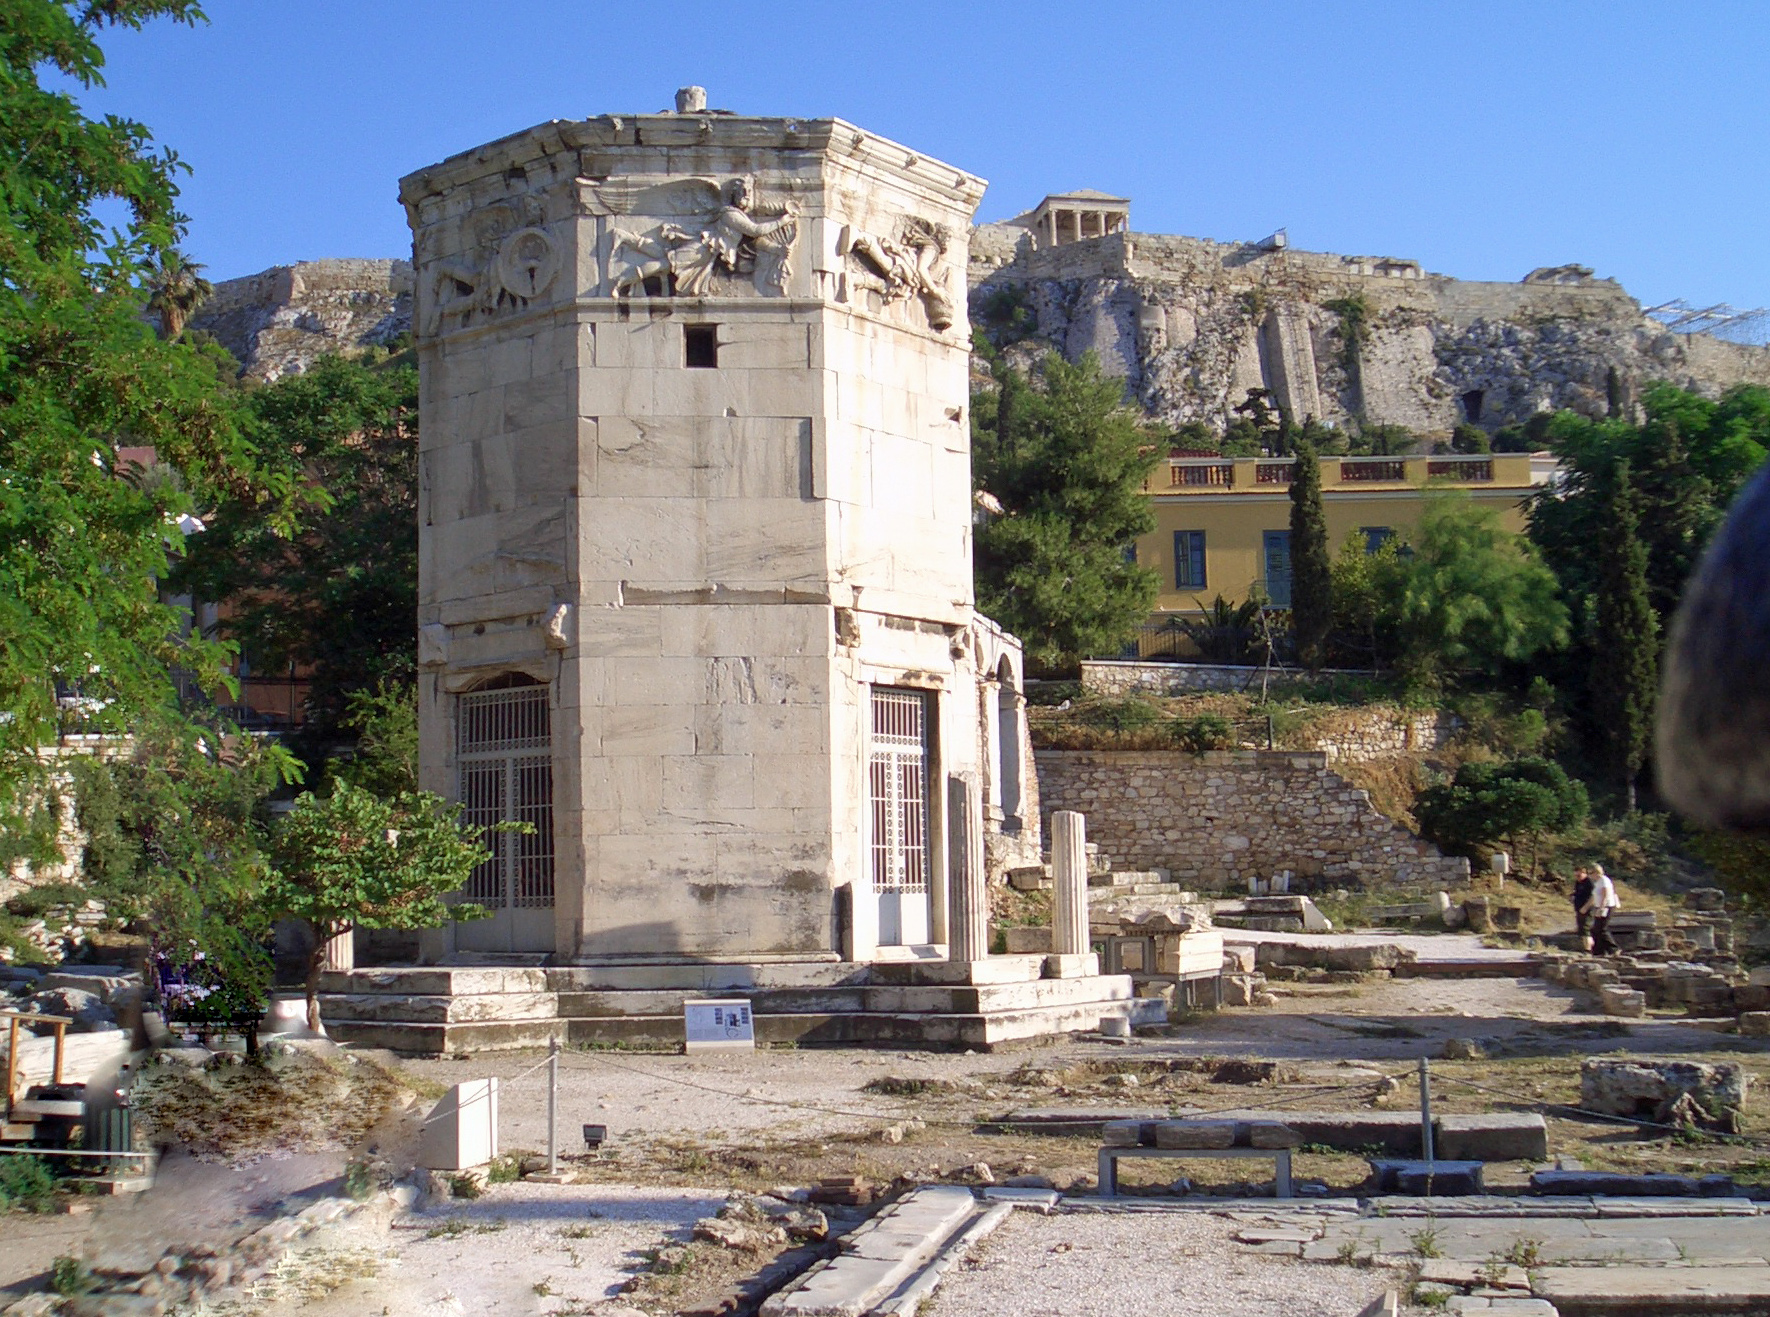 Atenas,Grecia.Cuna de la Civilizacion Occidental